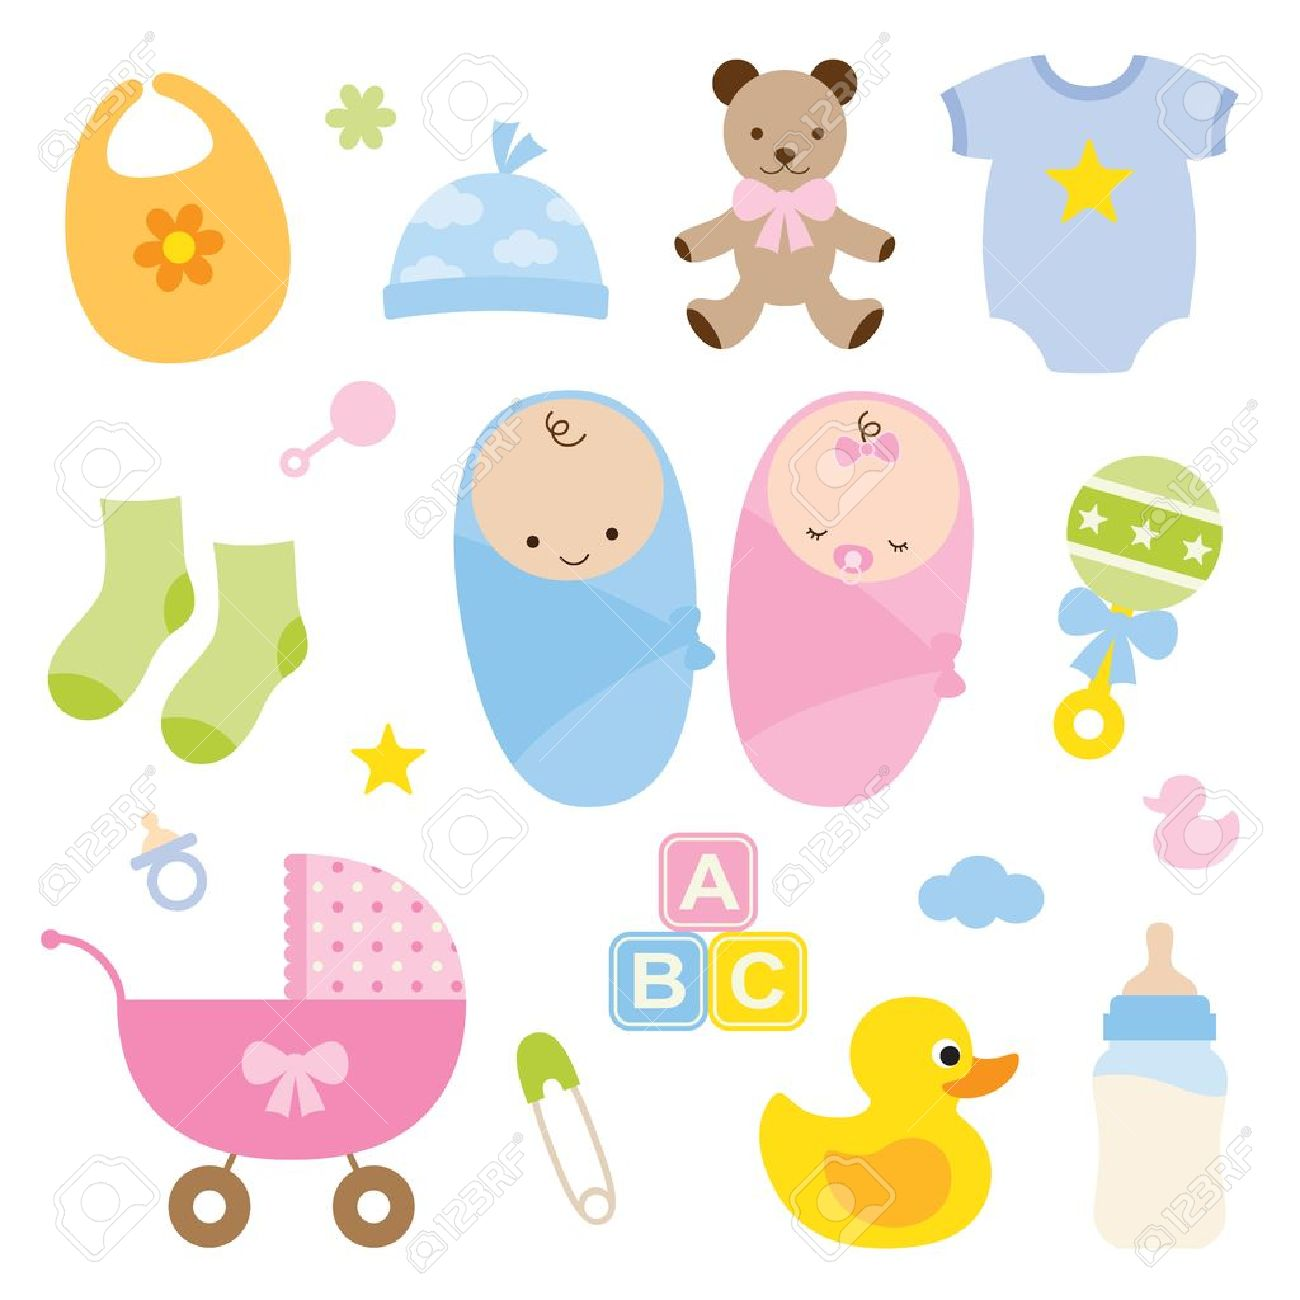 Vector illustration of babies and baby products - 21657303